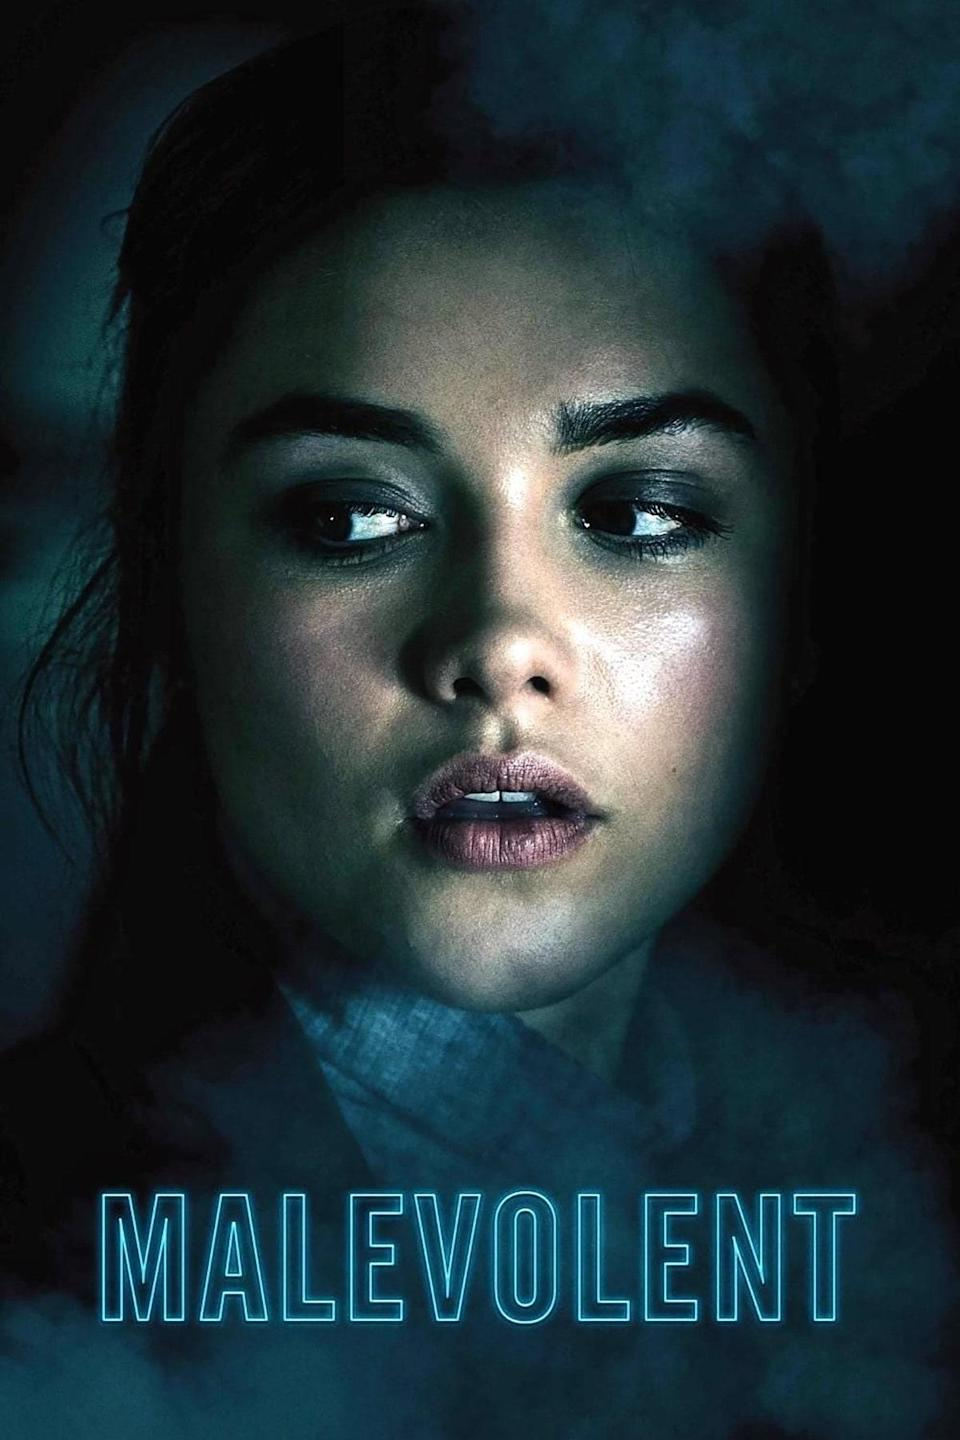 """<p>No, <em>Midsommar</em> was not the first super creepy film on Florence Pugh's resumé. In <em>Malevolent</em>, she plays part of a brother-sister duo that scams people by faking paranormal encounters. Things take a turn during a new assignment at a country house where they both start losing their grip on reality.</p> <p> <a href=""""https://www.netflix.com/title/80242081"""" rel=""""nofollow noopener"""" target=""""_blank"""" data-ylk=""""slk:Available on Netflix"""" class=""""link rapid-noclick-resp""""><em>Available on Netflix</em></a> </p>"""